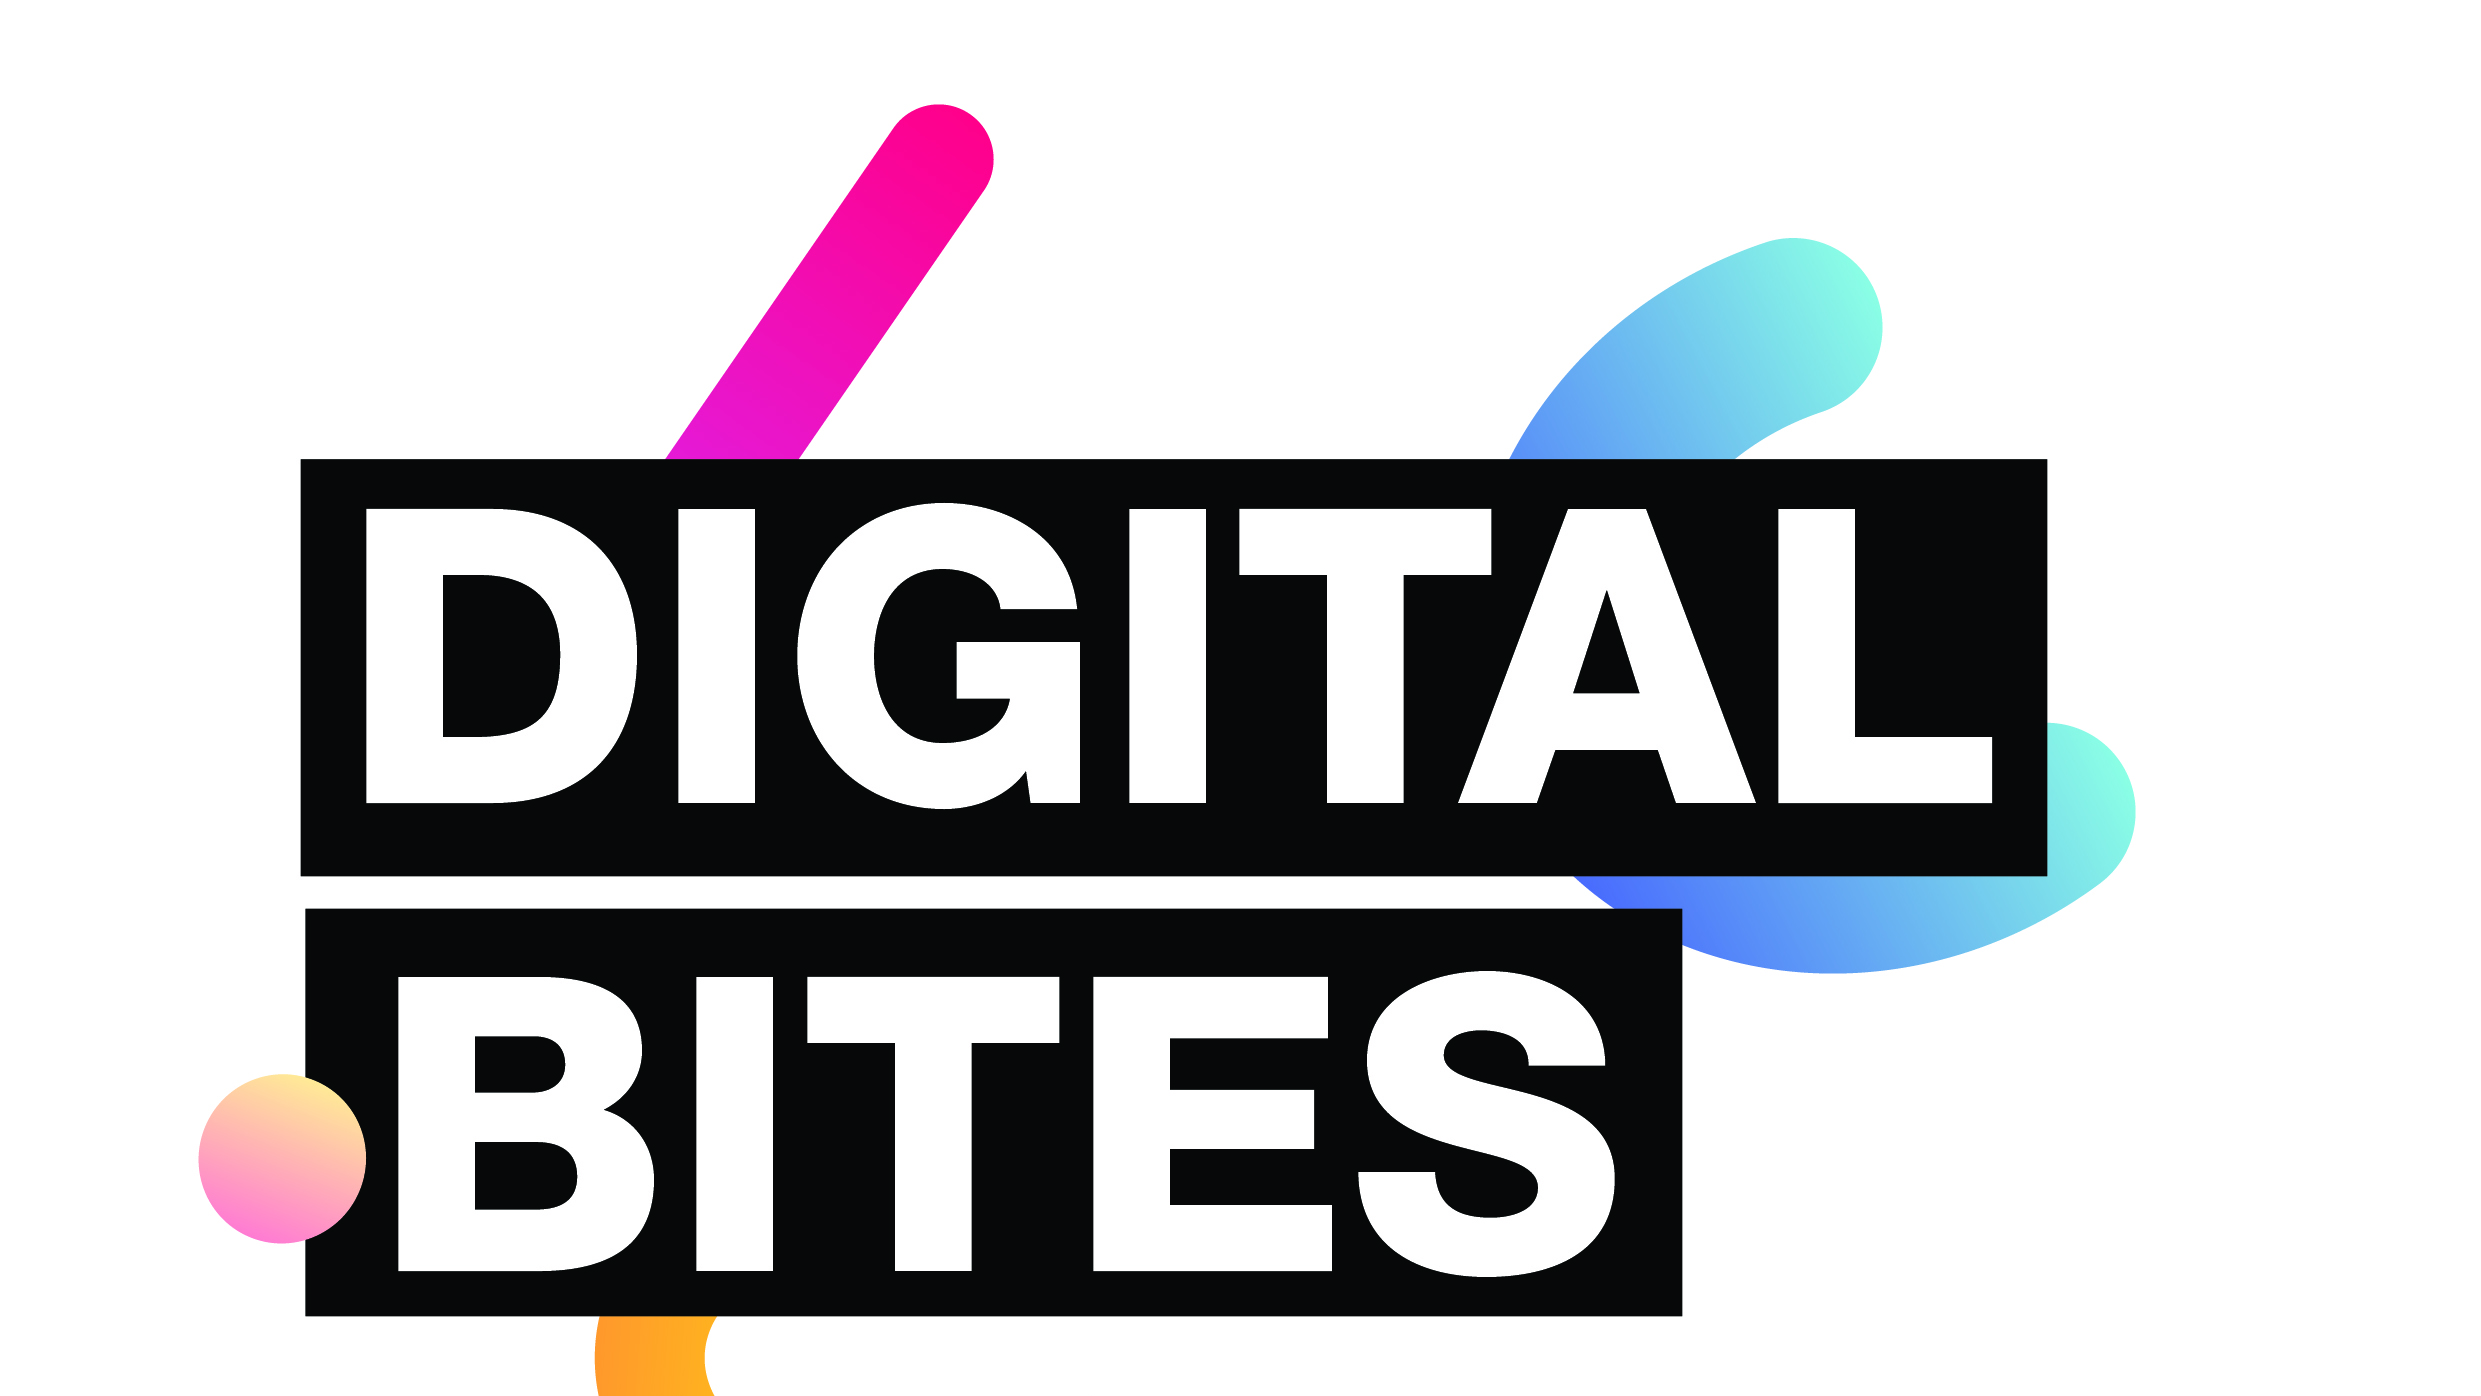 Digital Bites is a 3 hours Envision talk on disruptive case studies to inspire the brand's team from different angles. This is the first step of a bigger workshop program to develop a hybrid creative approach.